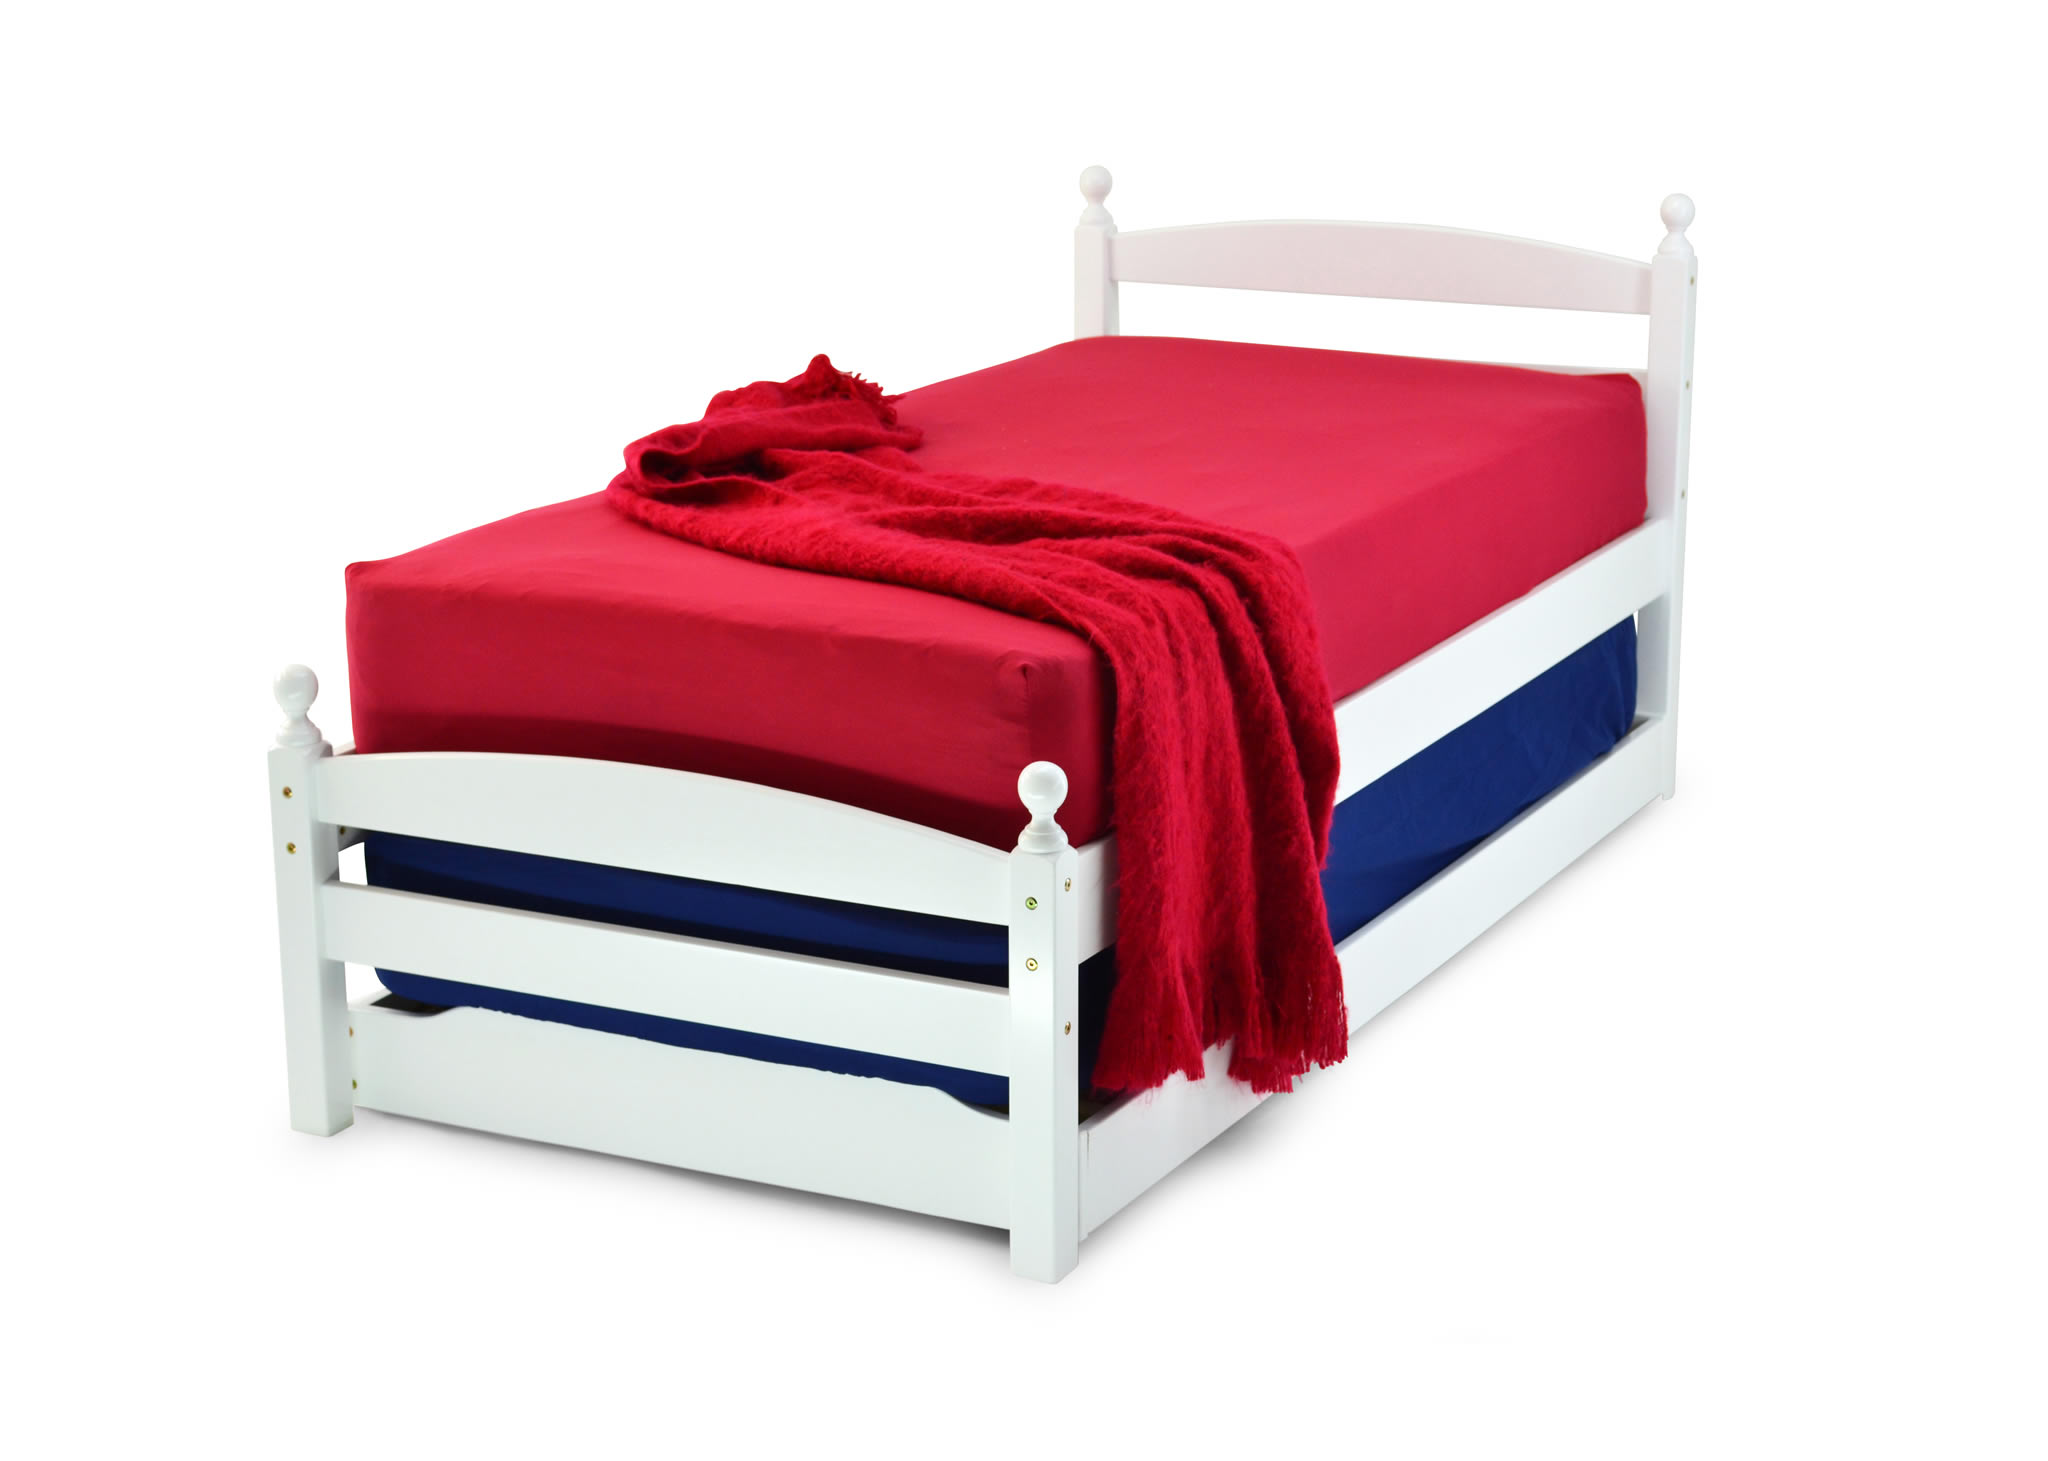 PALW_Wholesale_Beds_Suppliers_2